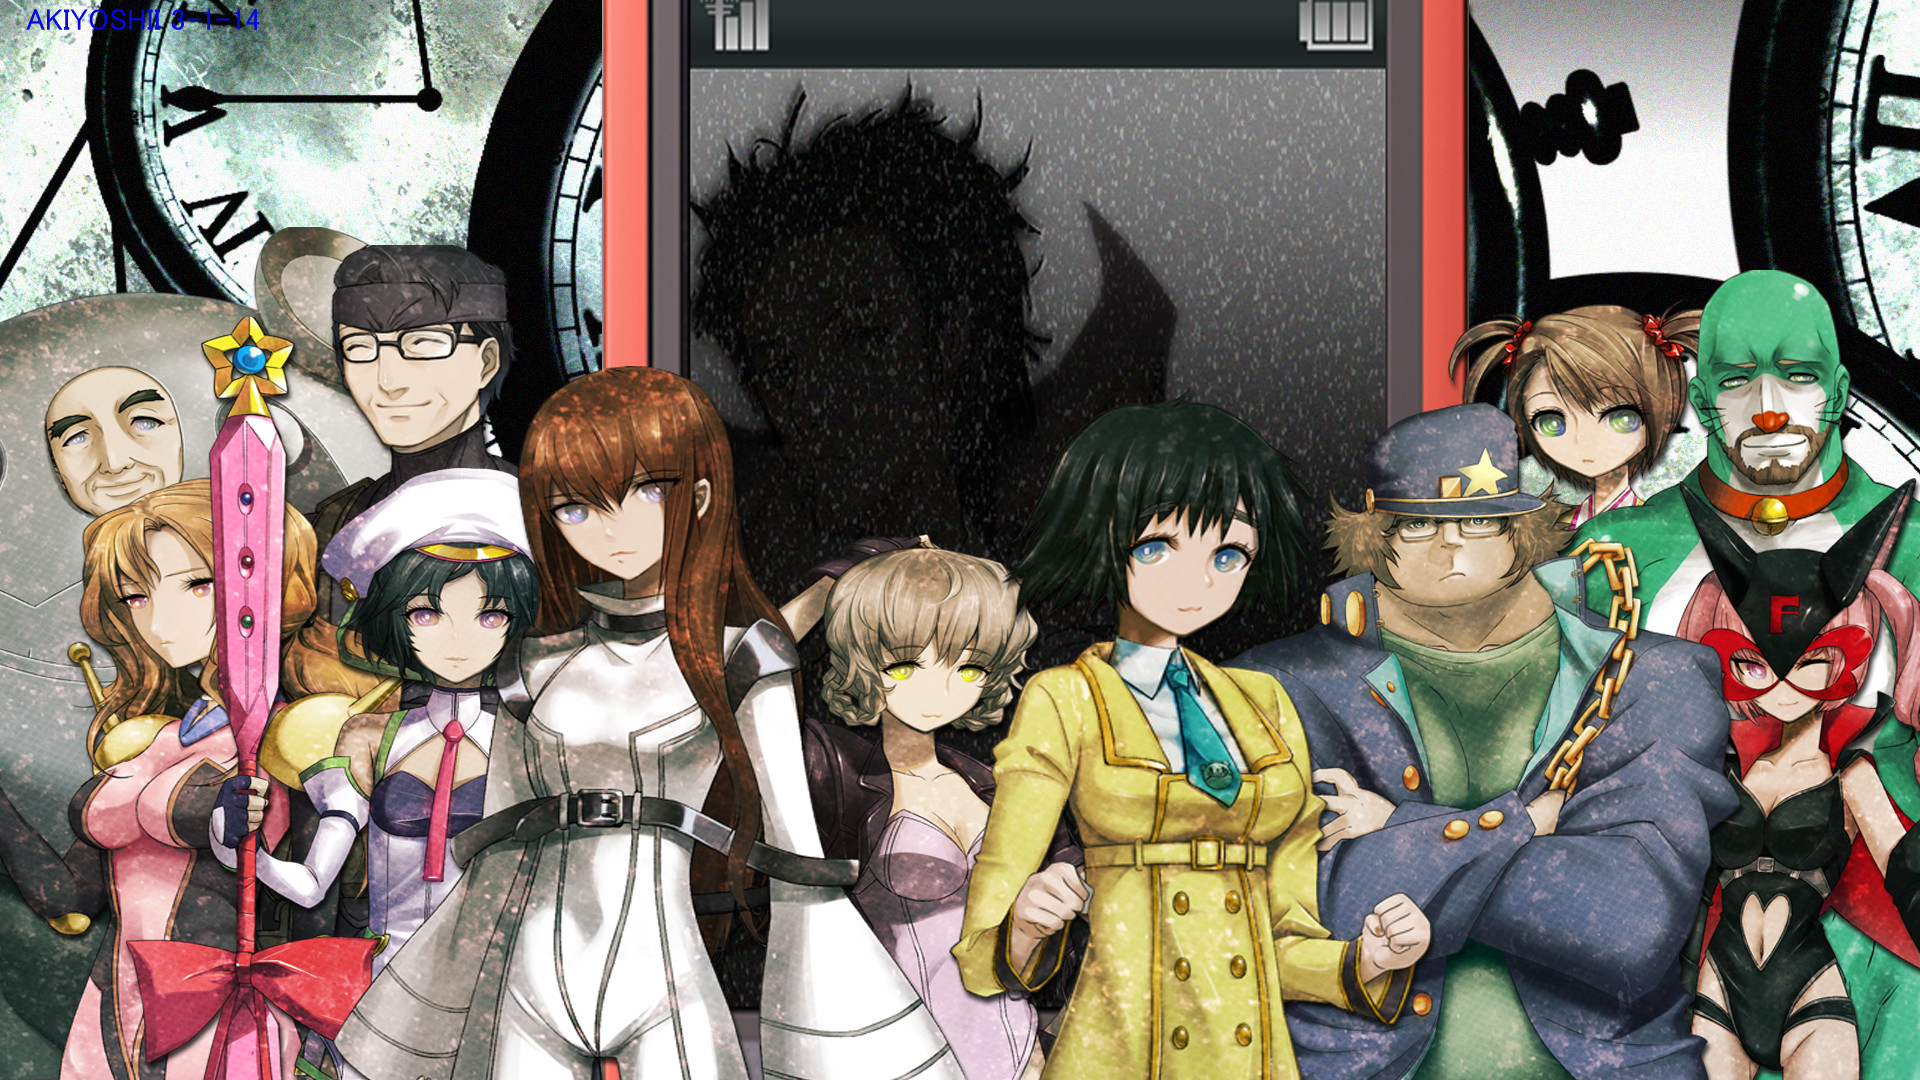 Res: 1920x1080, SteinsGate cosplay sprite wallpaper by Gws316 SteinsGate cosplay sprite  wallpaper by Gws316